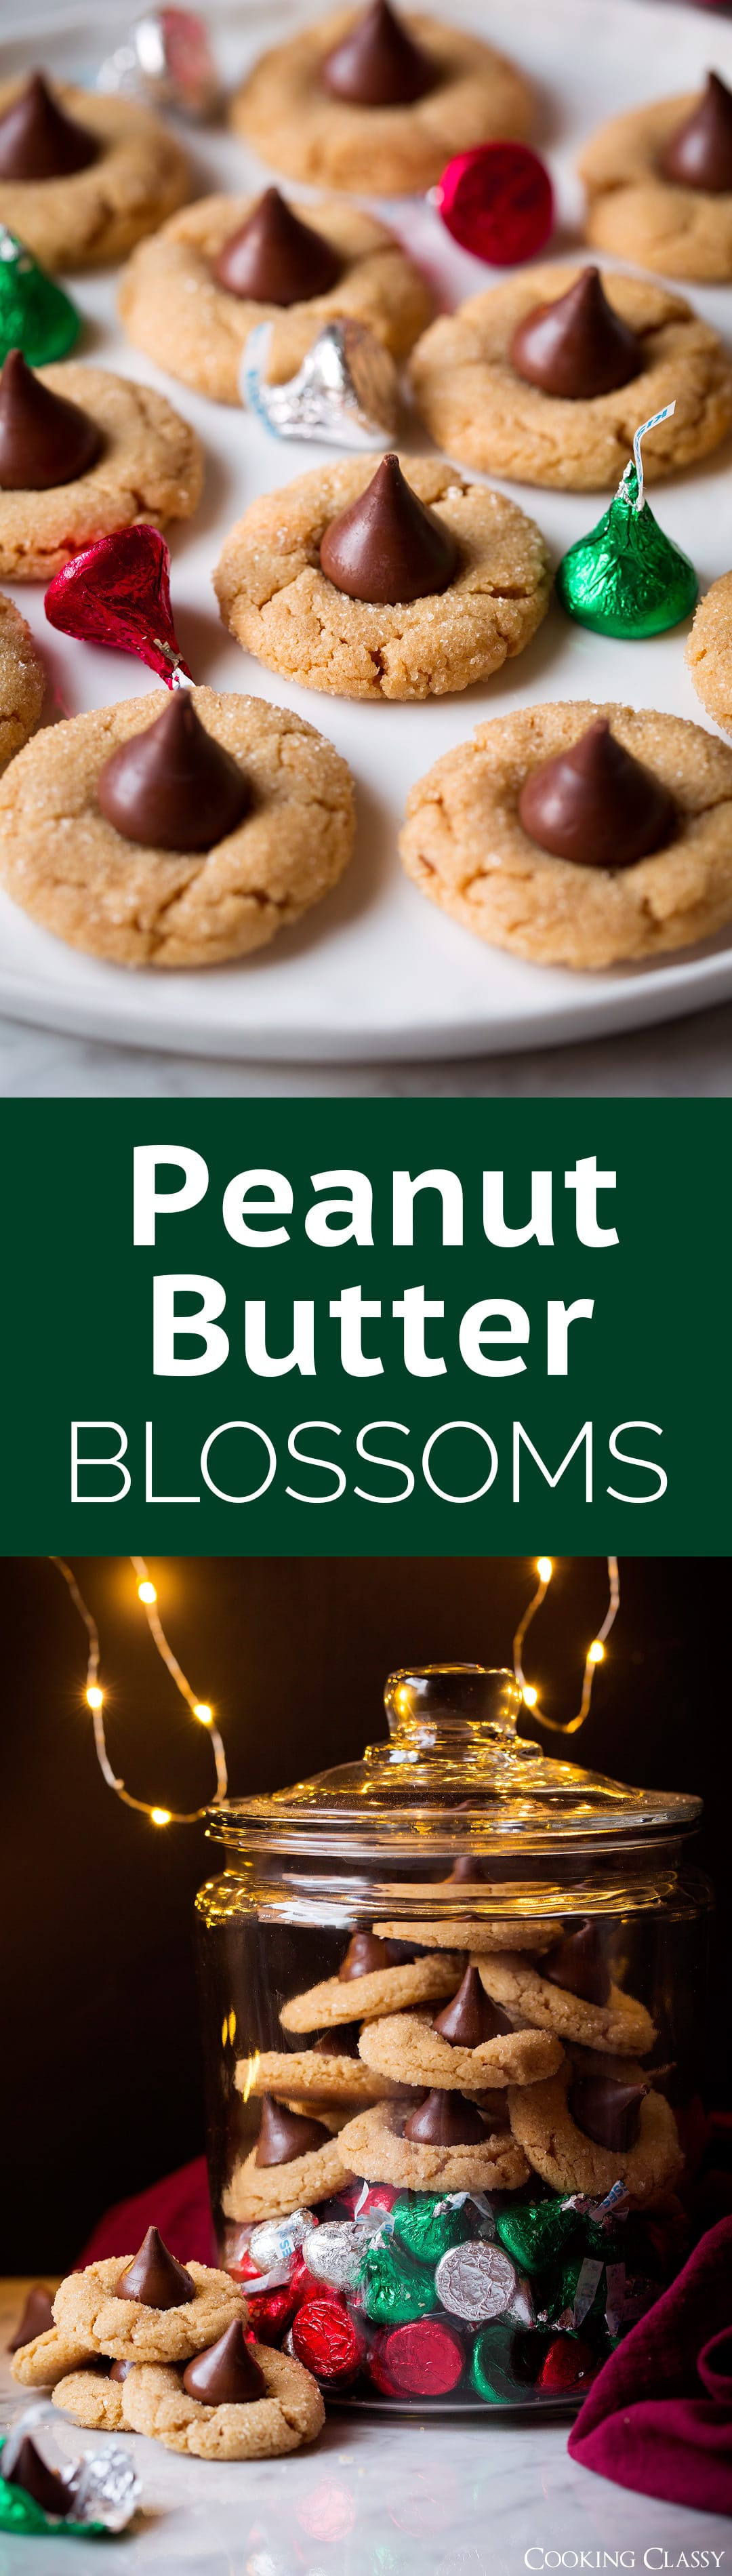 Peanut Butter Blossoms - a holiday MUST! Soft and tender and perfectly peanut buttery! Plus isn't that milk chocolate and peanut butter combo just dreamy?